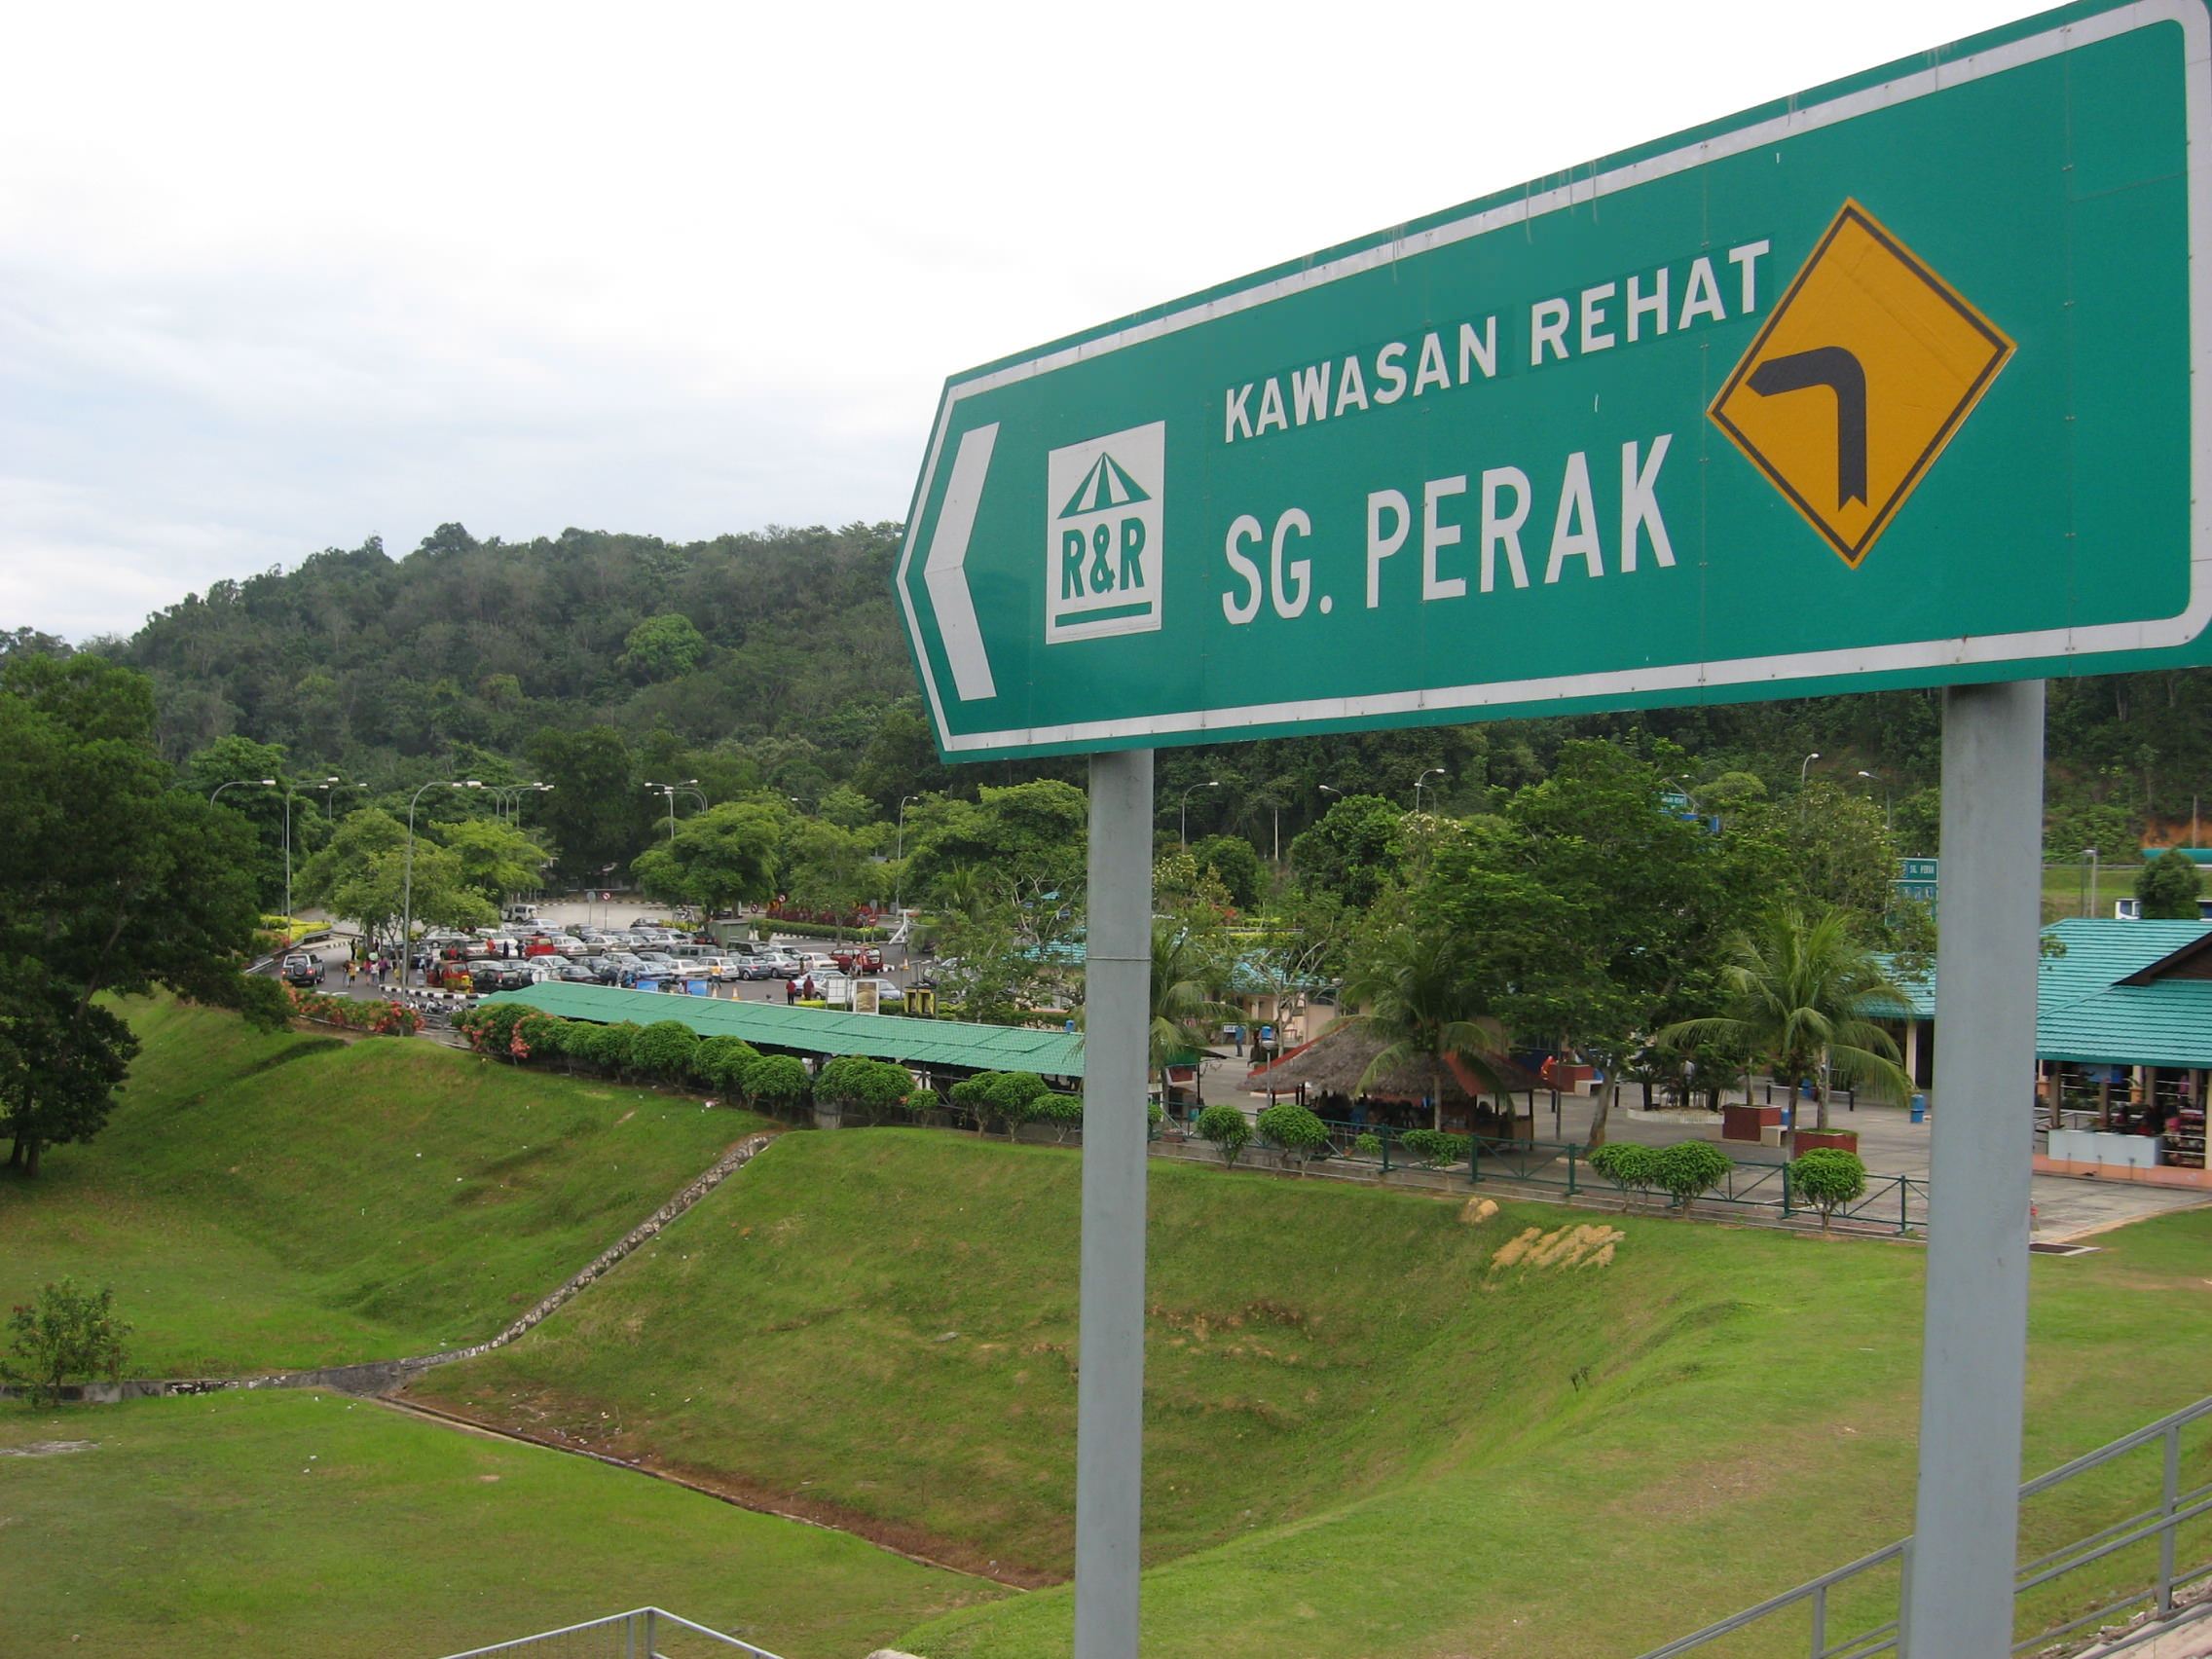 Image from Perak Today